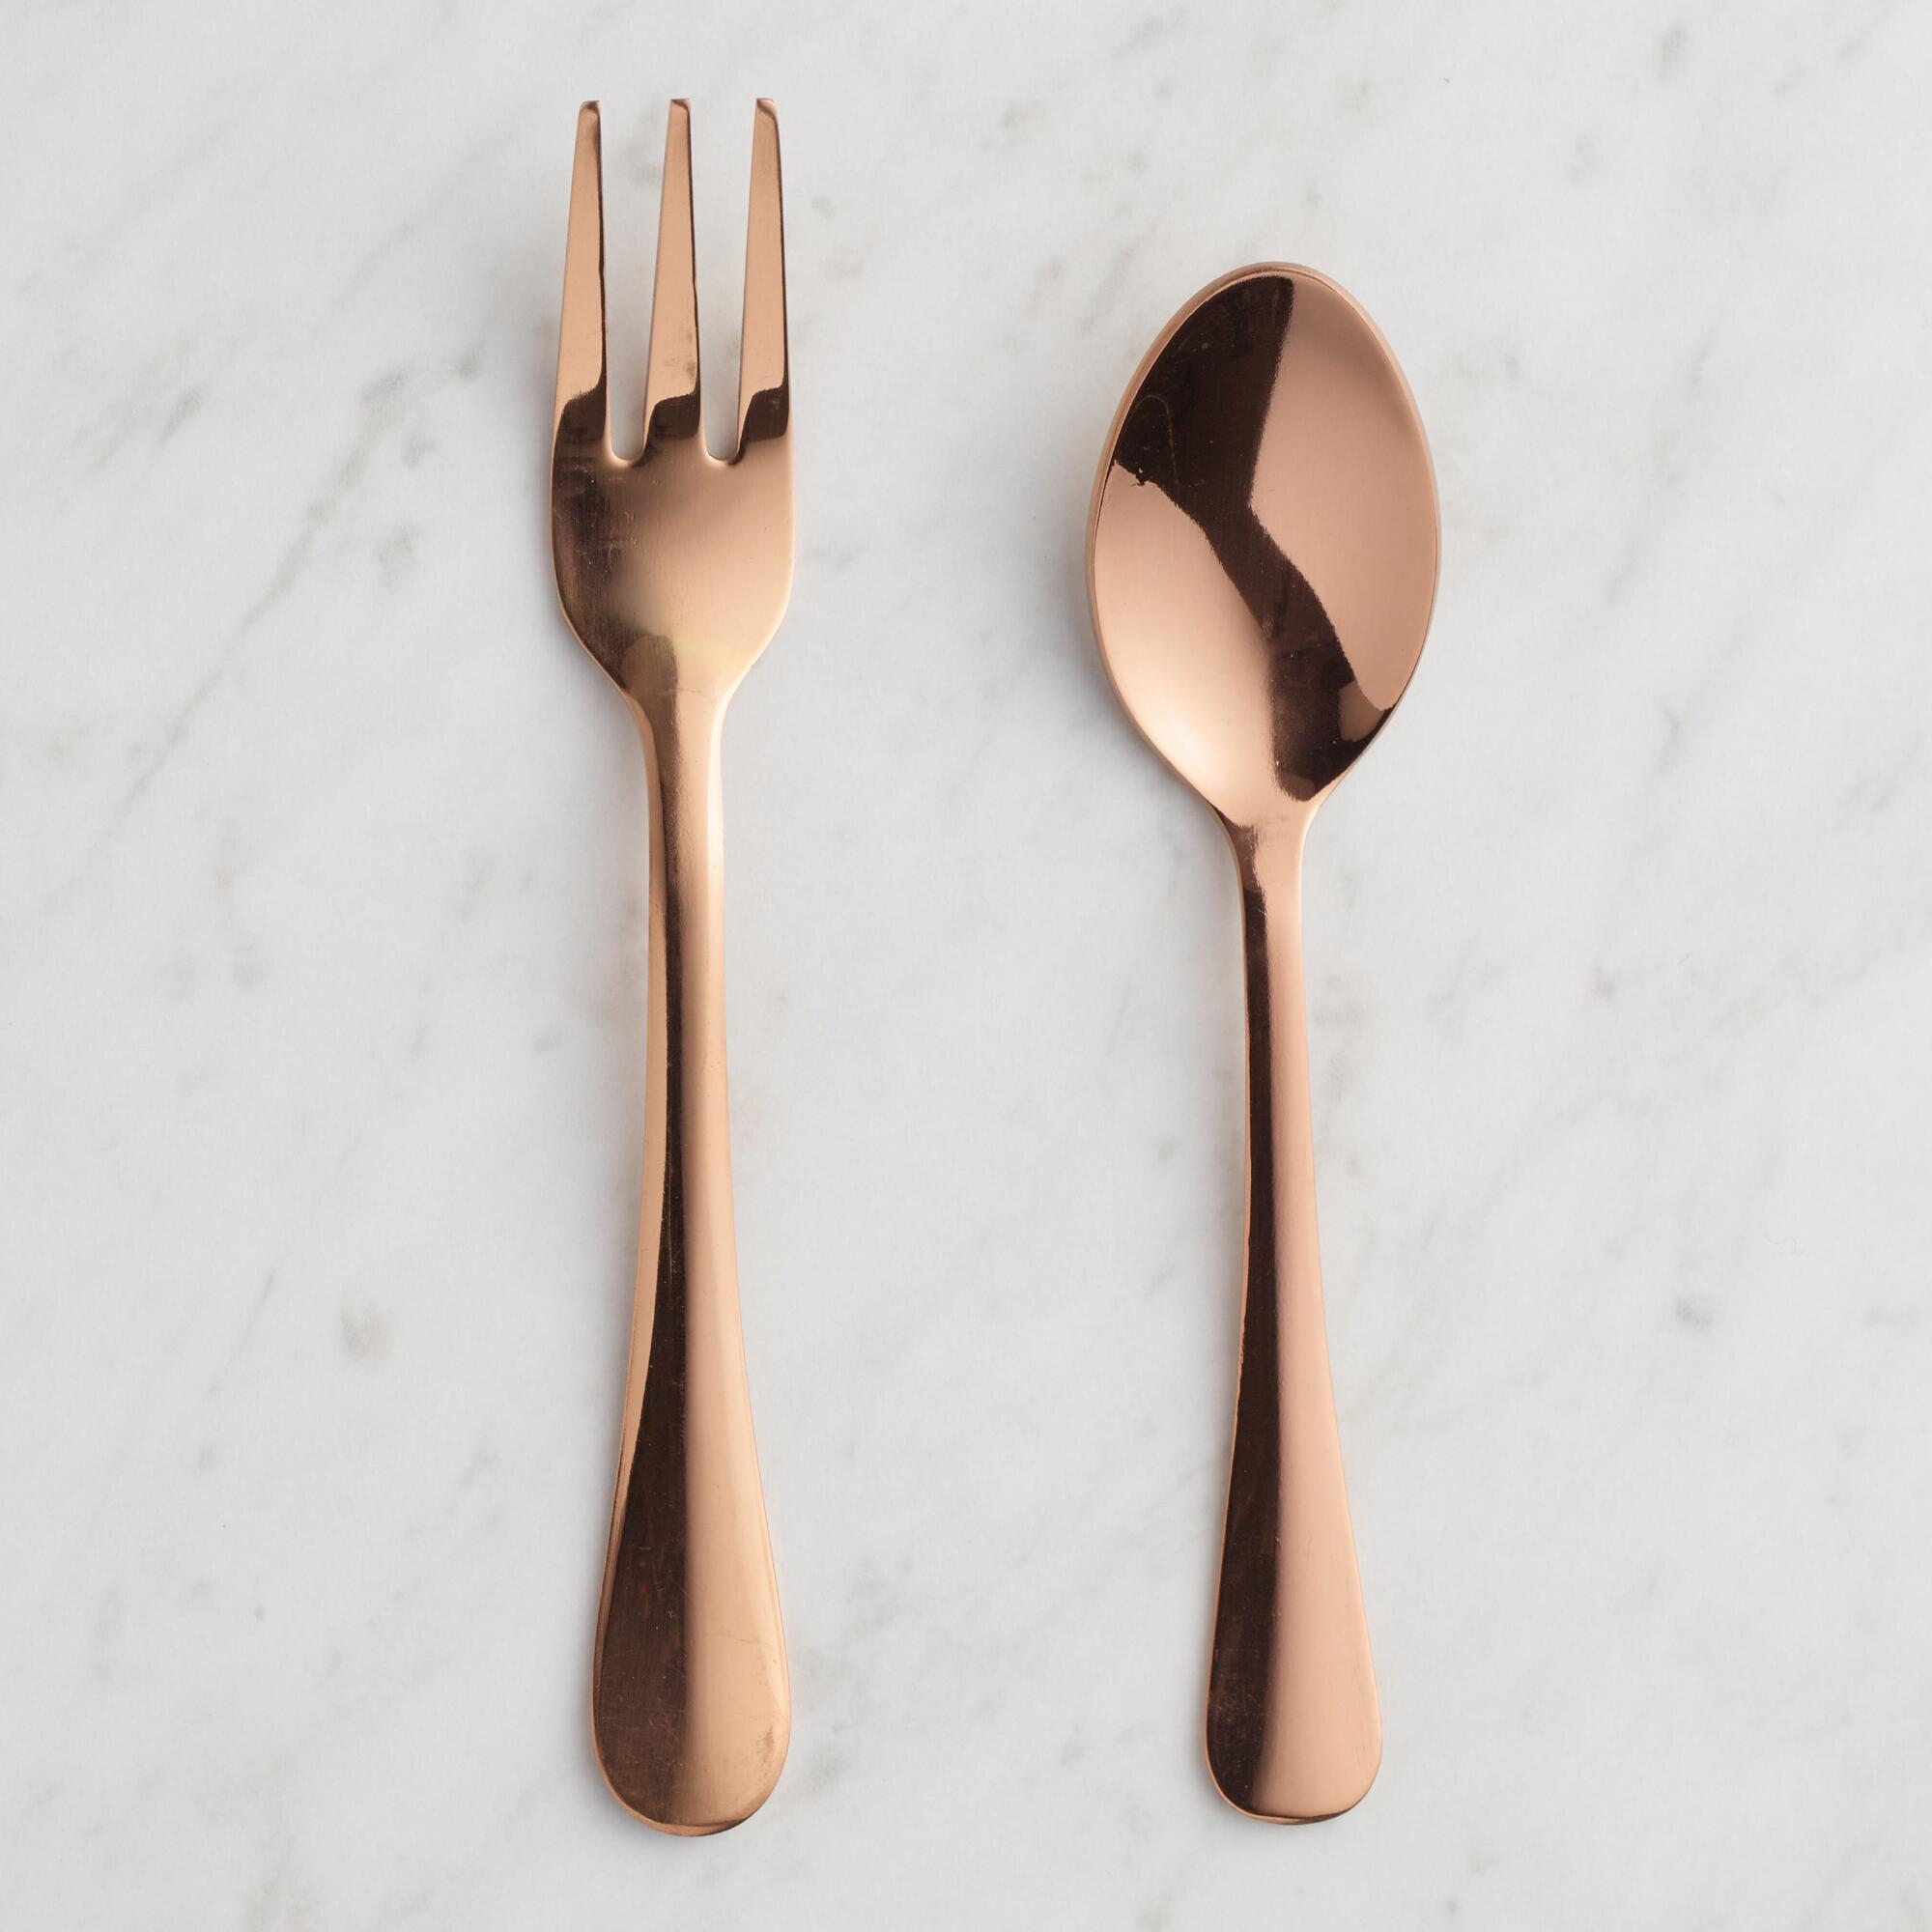 Rose Gold Buffet Cocktail Utensil Collection by World Market